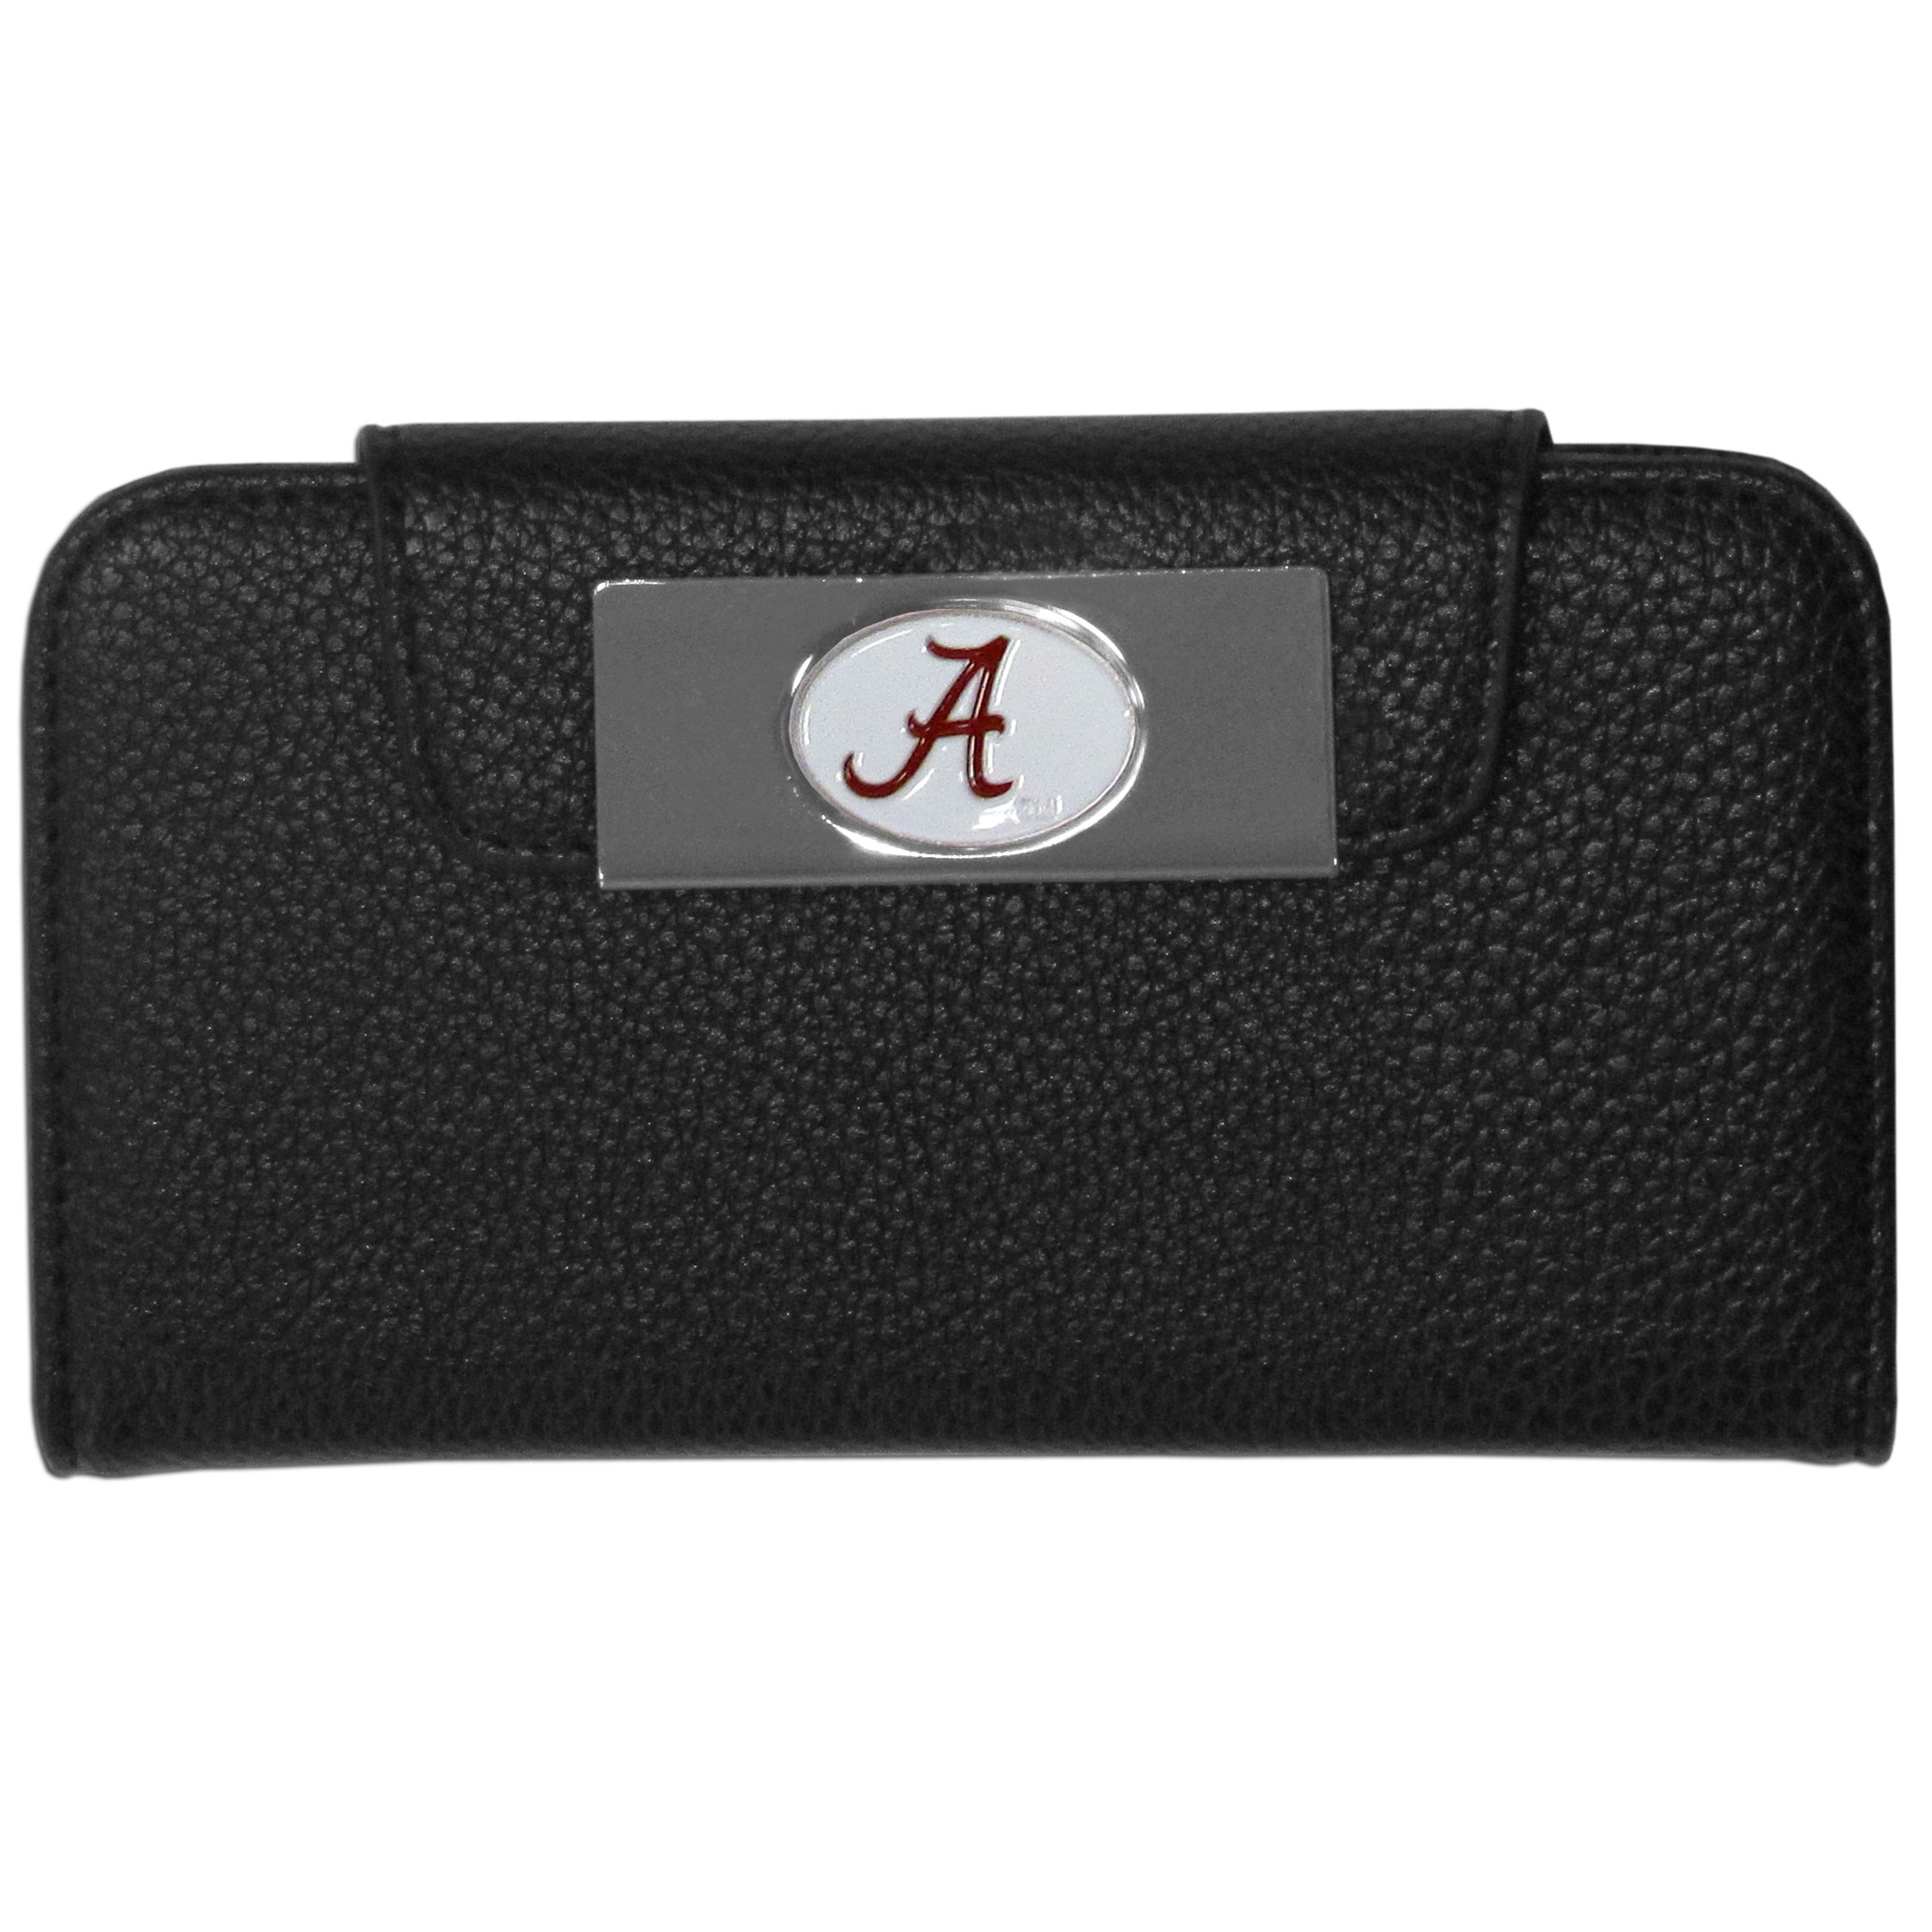 Alabama Crimson Tide Samsung Galaxy S4 Wallet Case - This new & wildly popular case is ideal for those who like to travel light! The stylish case has an inner hard shell that securely holds your phone while allowing complete access to the phone's functionality. The flip cover has slots for credit cards, business cards and identification. The magnetic flip cover has a metal Alabama Crimson Tide emblem on a high polish chrome backing. Fits the Samsung Galaxy S4